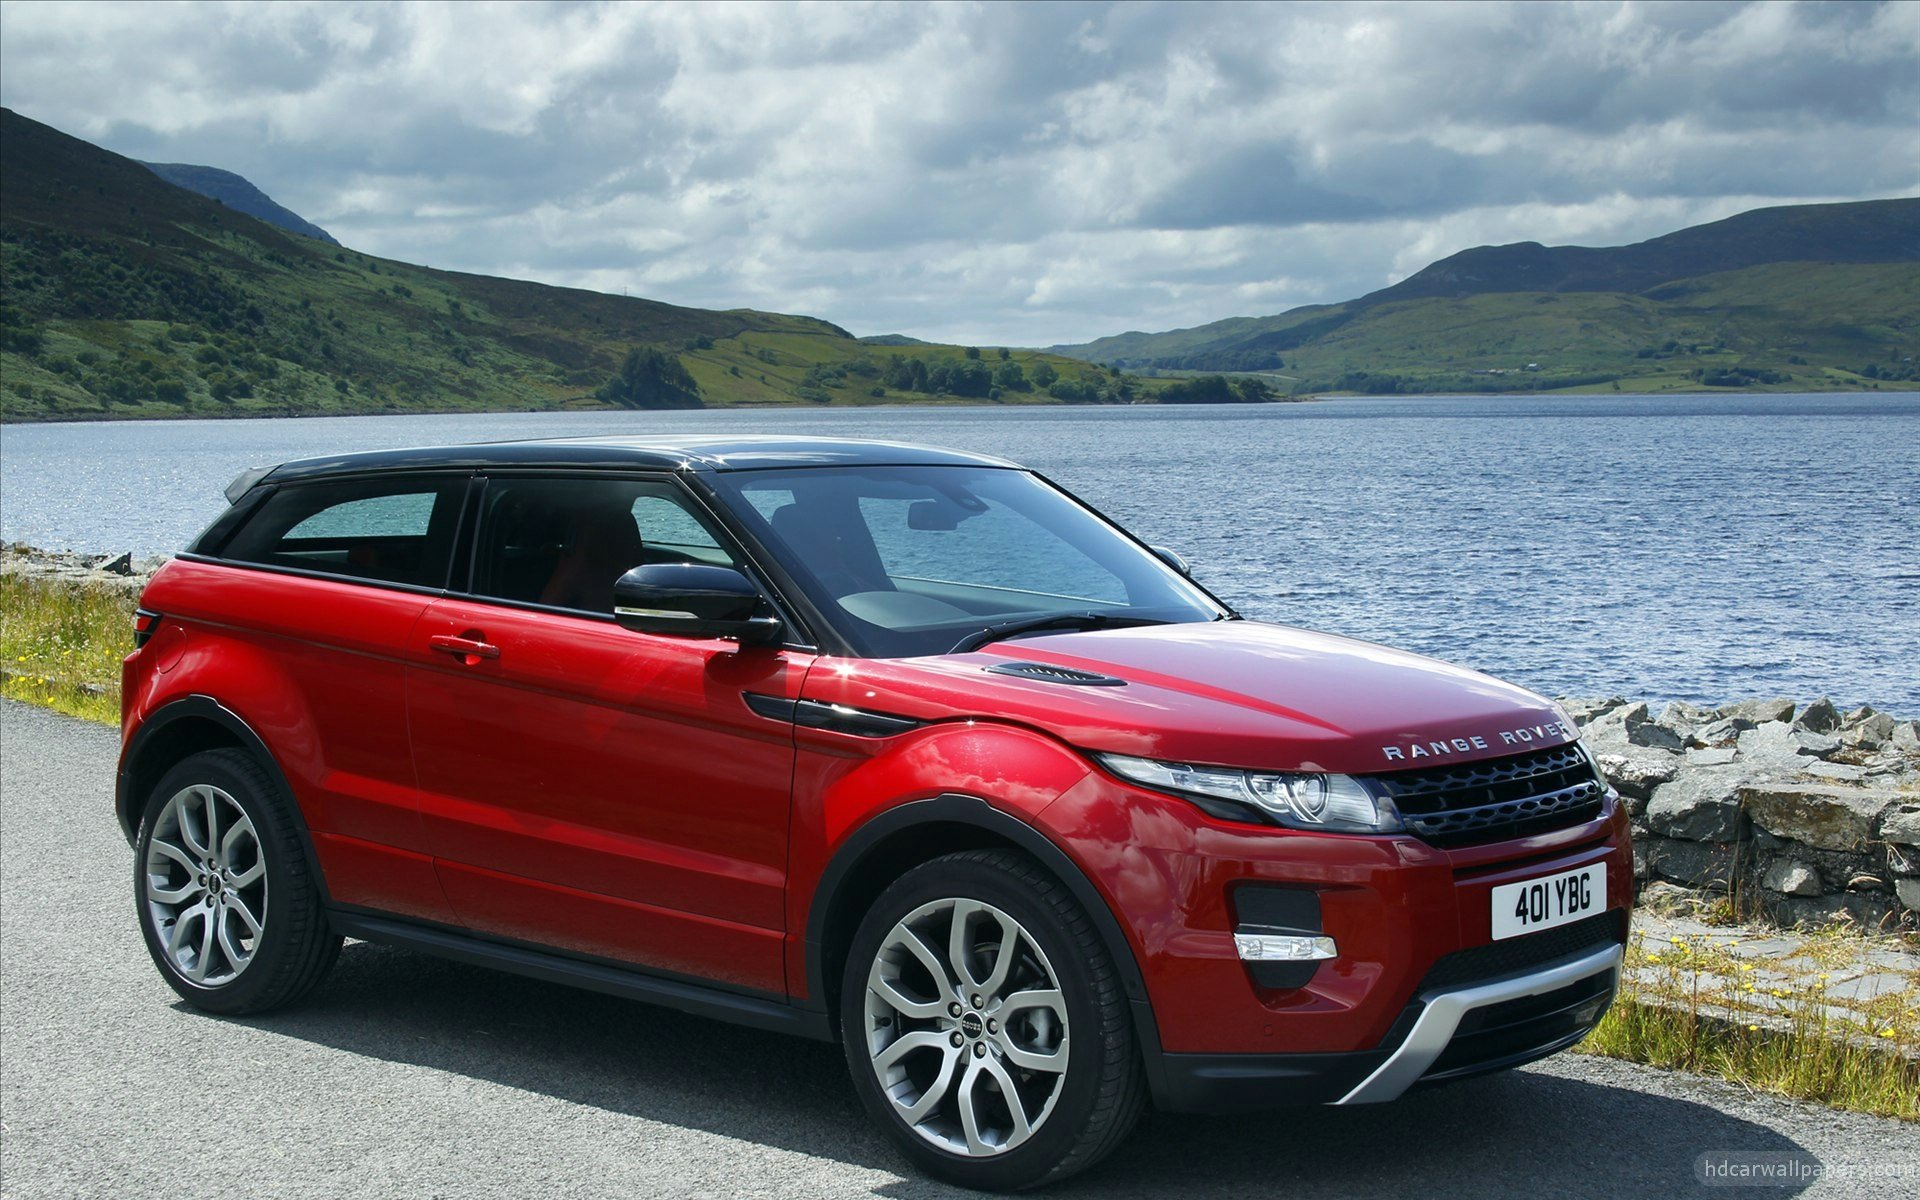 New Range Rover Evoque Hd Wallpapers On This Month